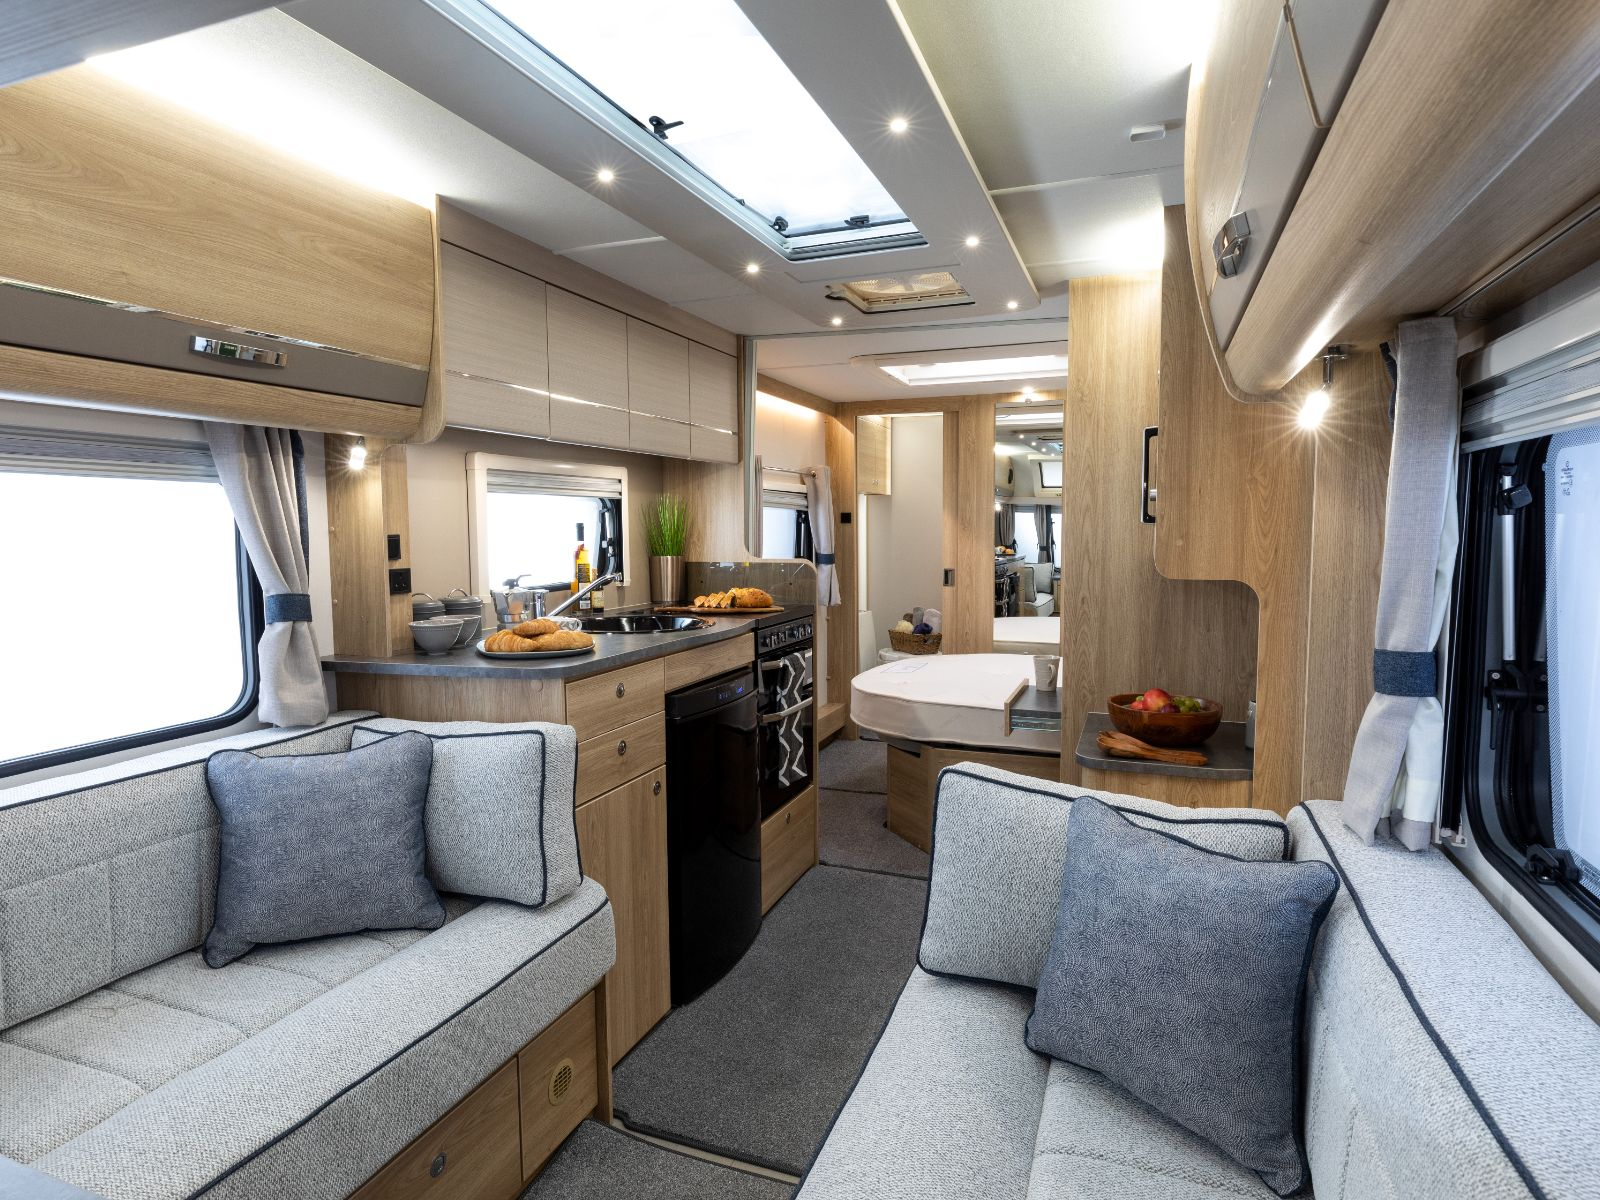 Chatsworth Caravan Lounge Area with Kitchen and Bedroom View'